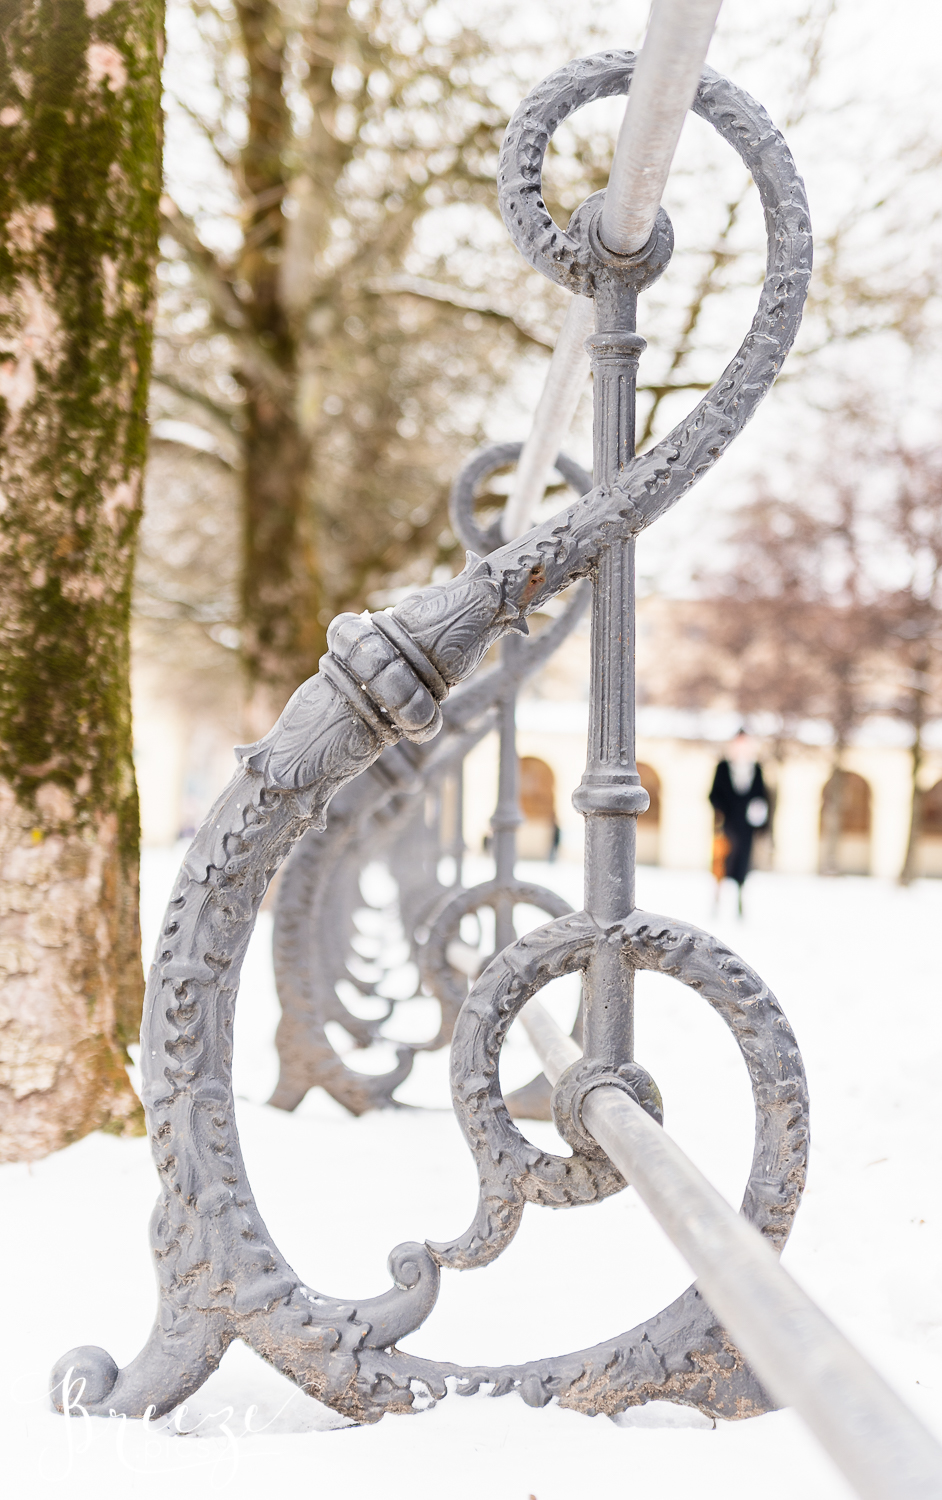 Munich_Winter_Treble_Clef.jpg